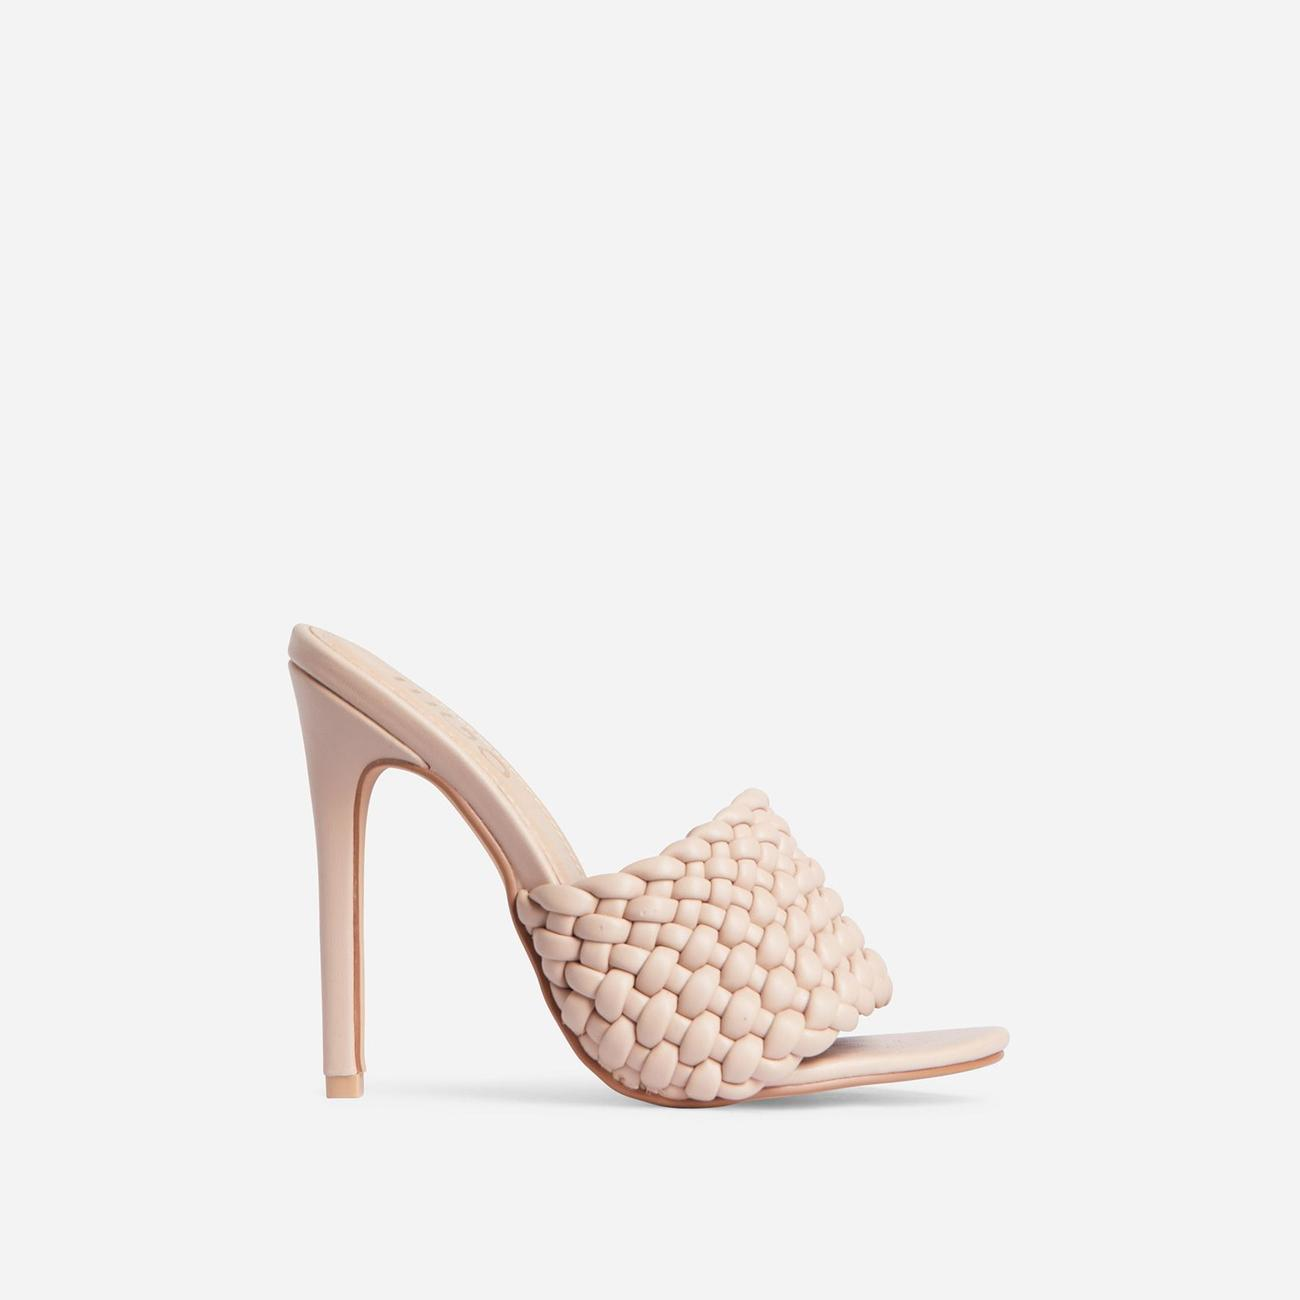 Twisted Woven Detail Peep Toe Heel Mule In Nude Faux Leather Image 1